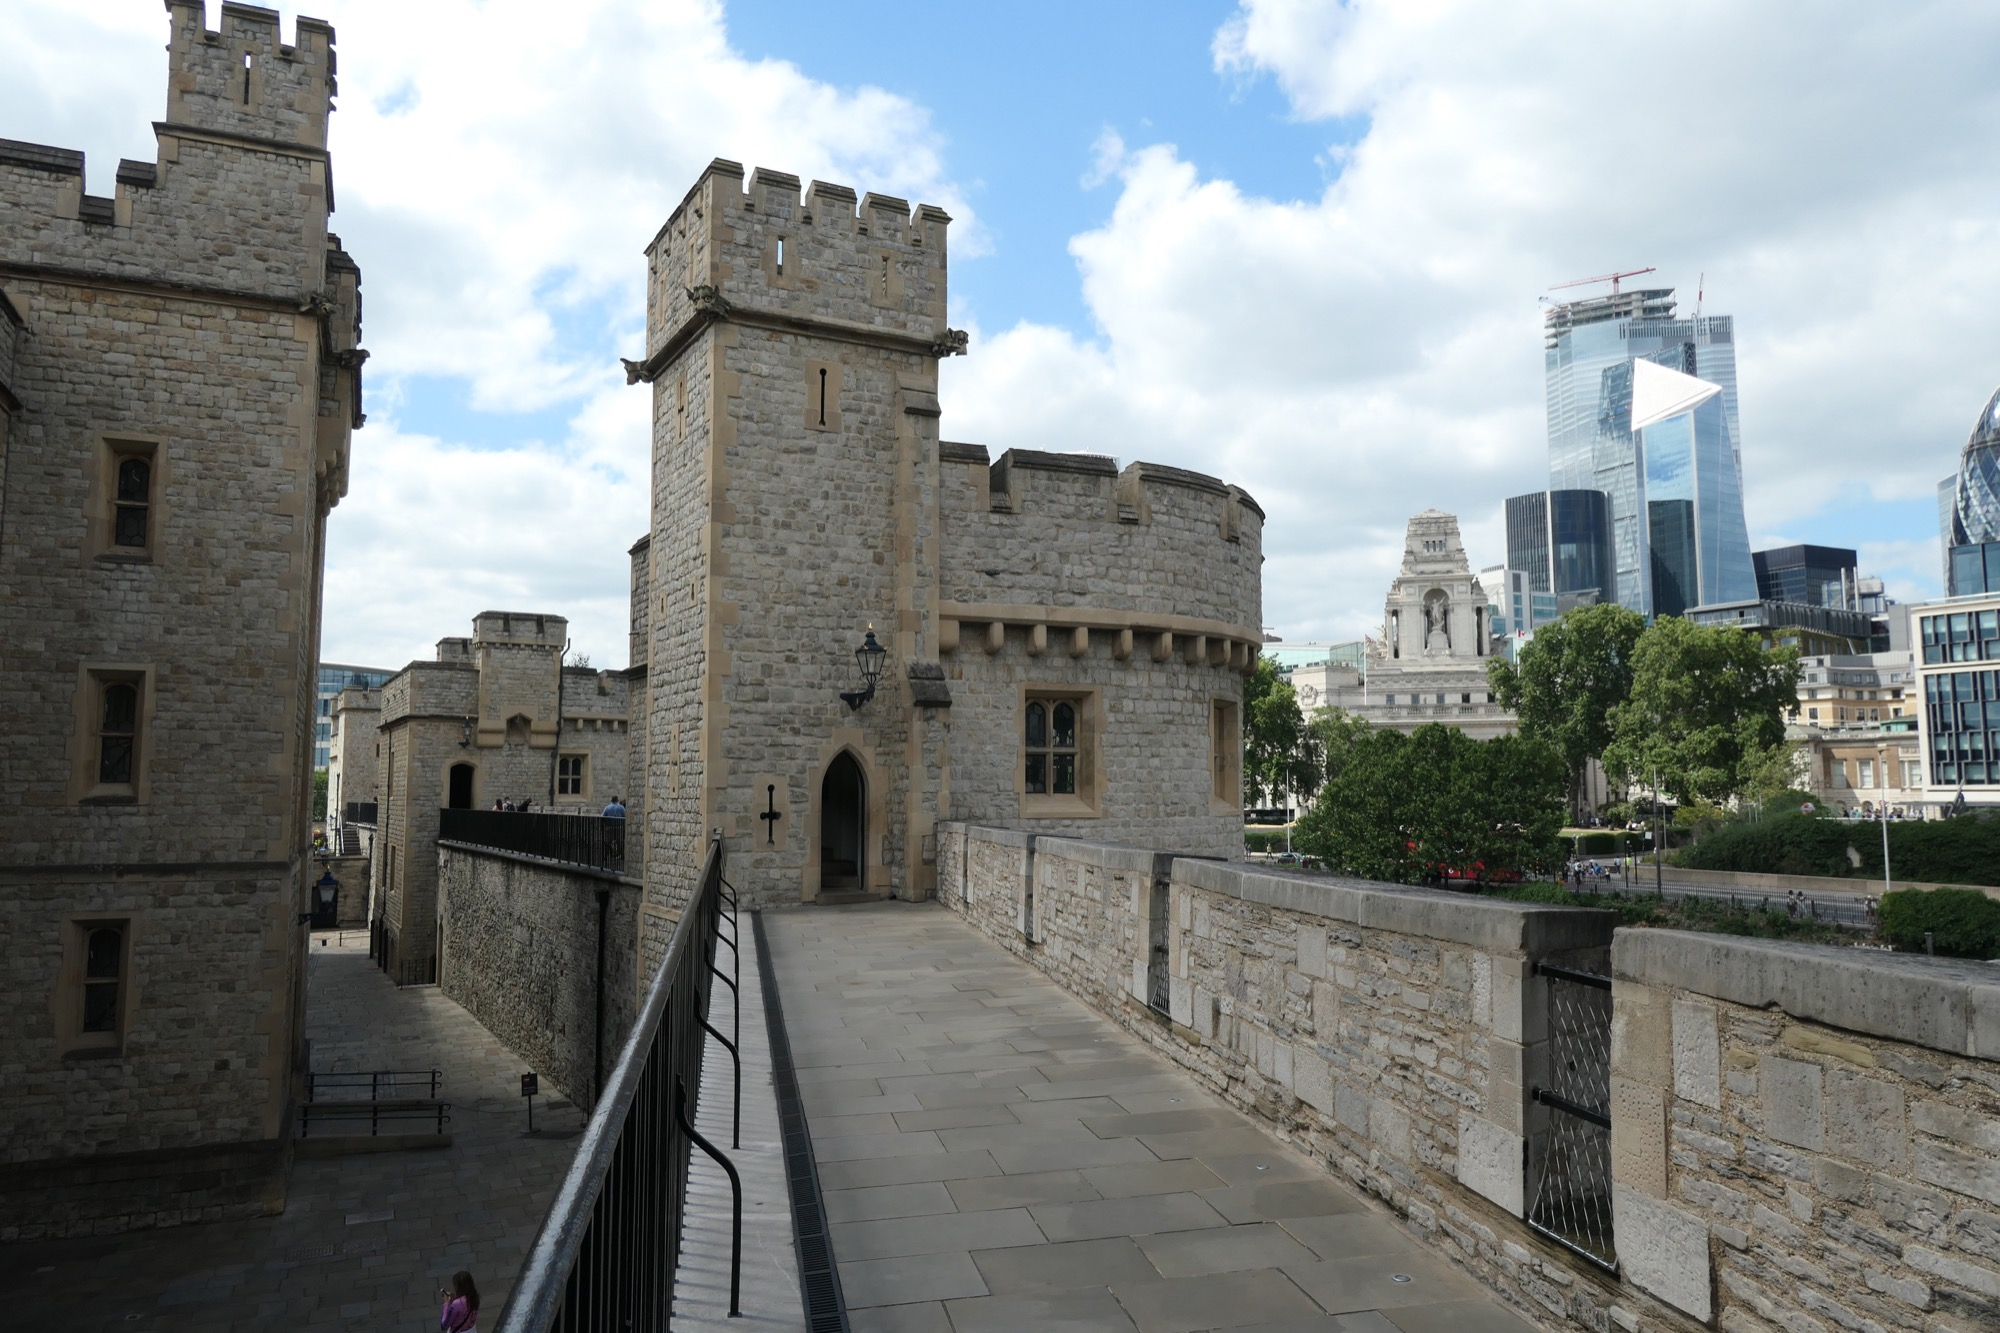 Bastions at the Tower of London.